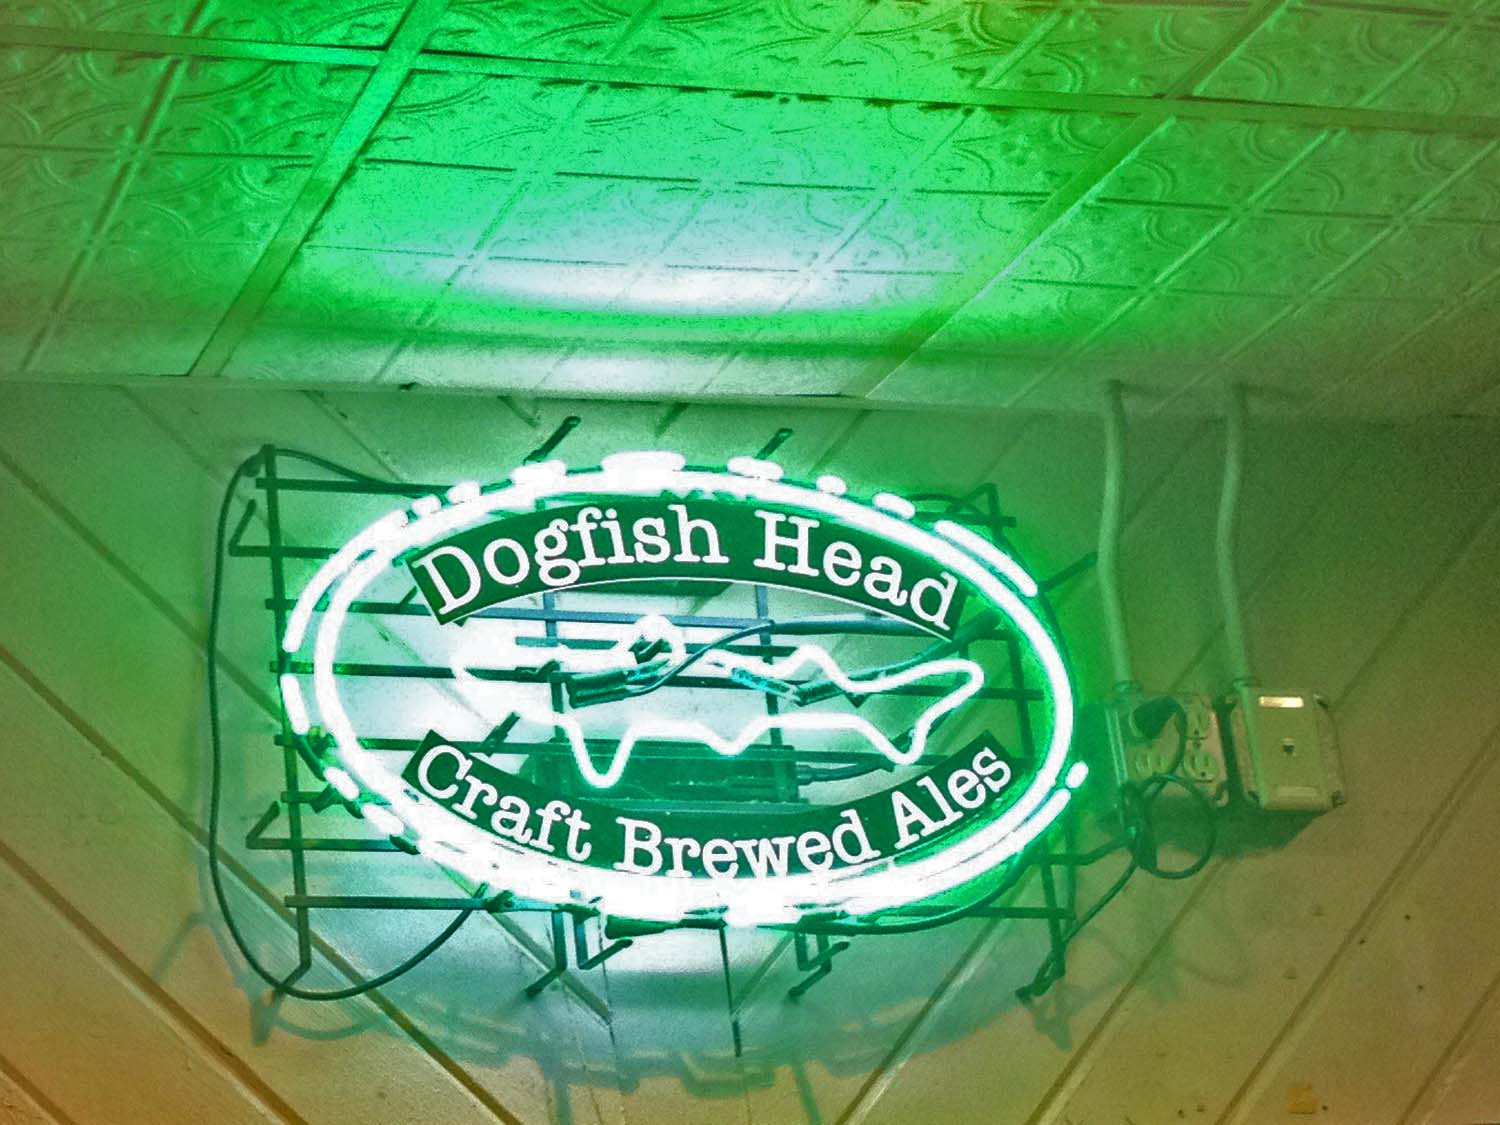 Dogfish Head great craft beer